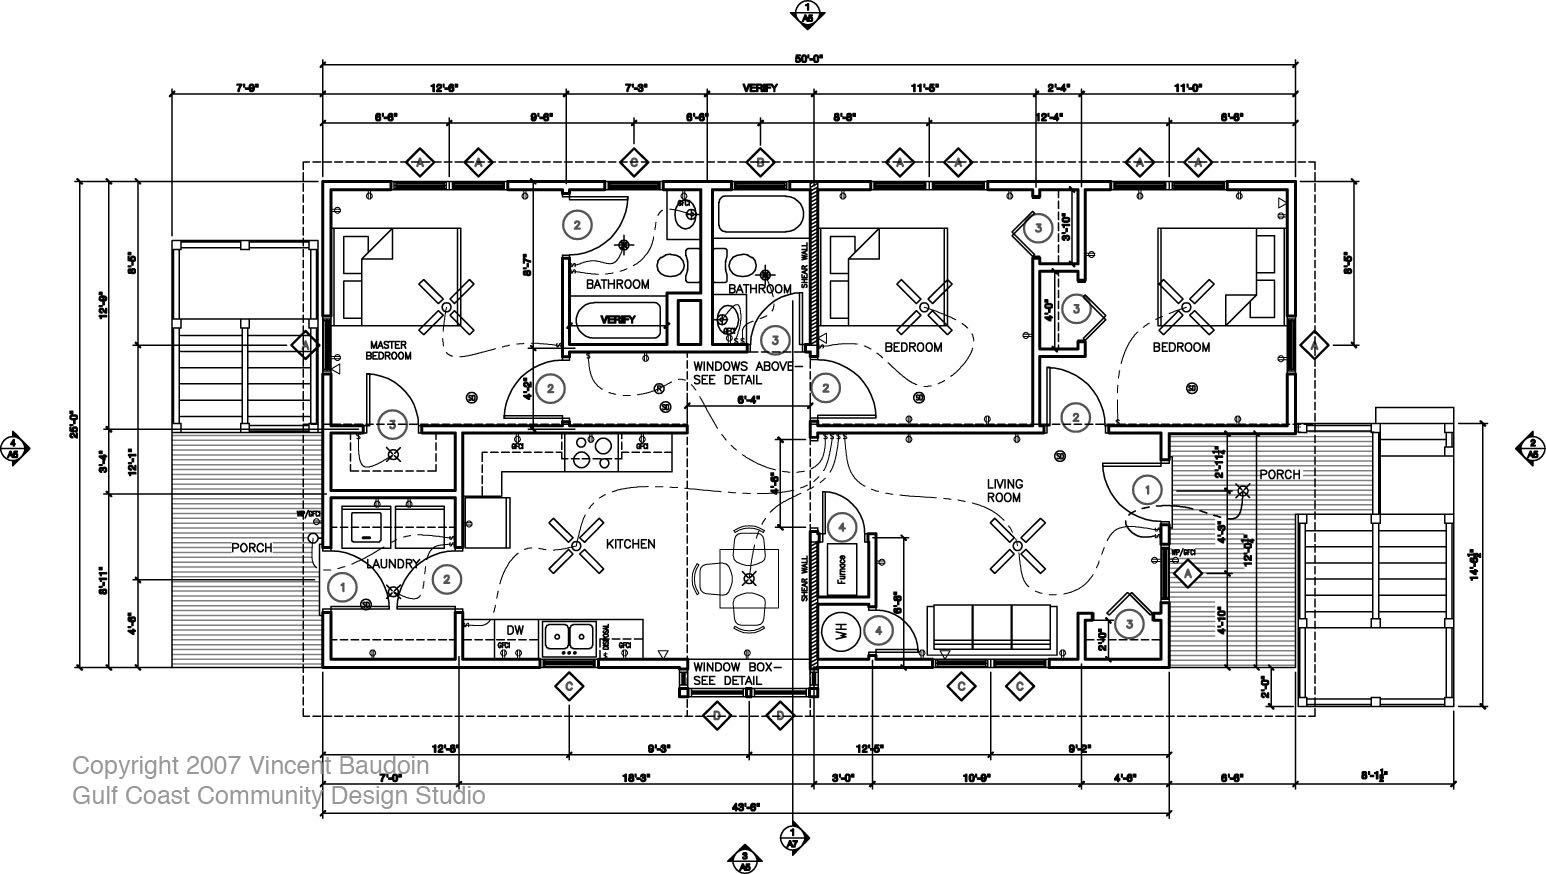 House building plans house ideals - Home construction designs ...